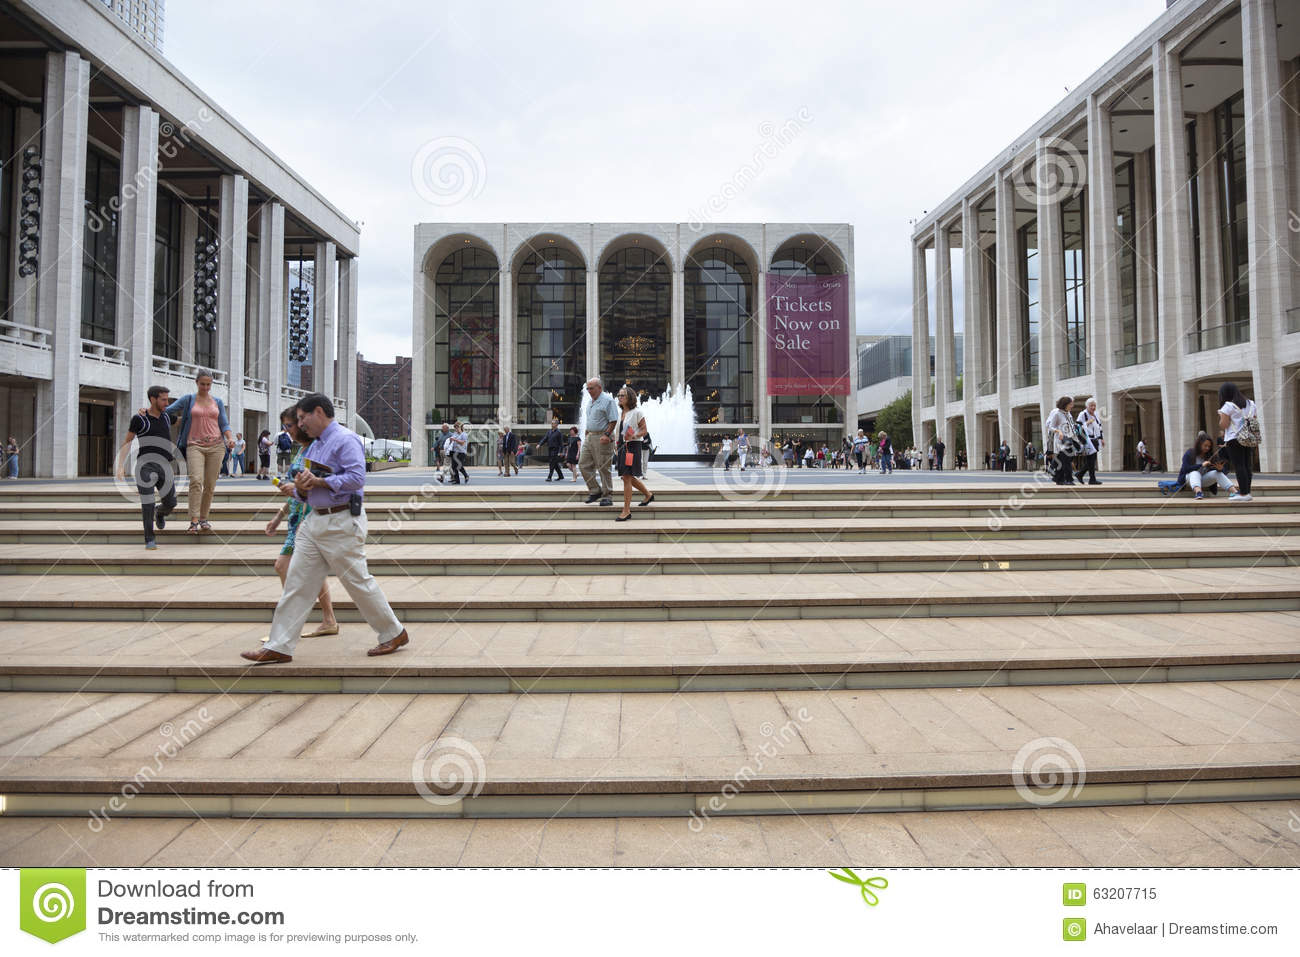 new york city, 12 september 2015: people walk on steps near metropolitan opera at lincoln centre in new york city